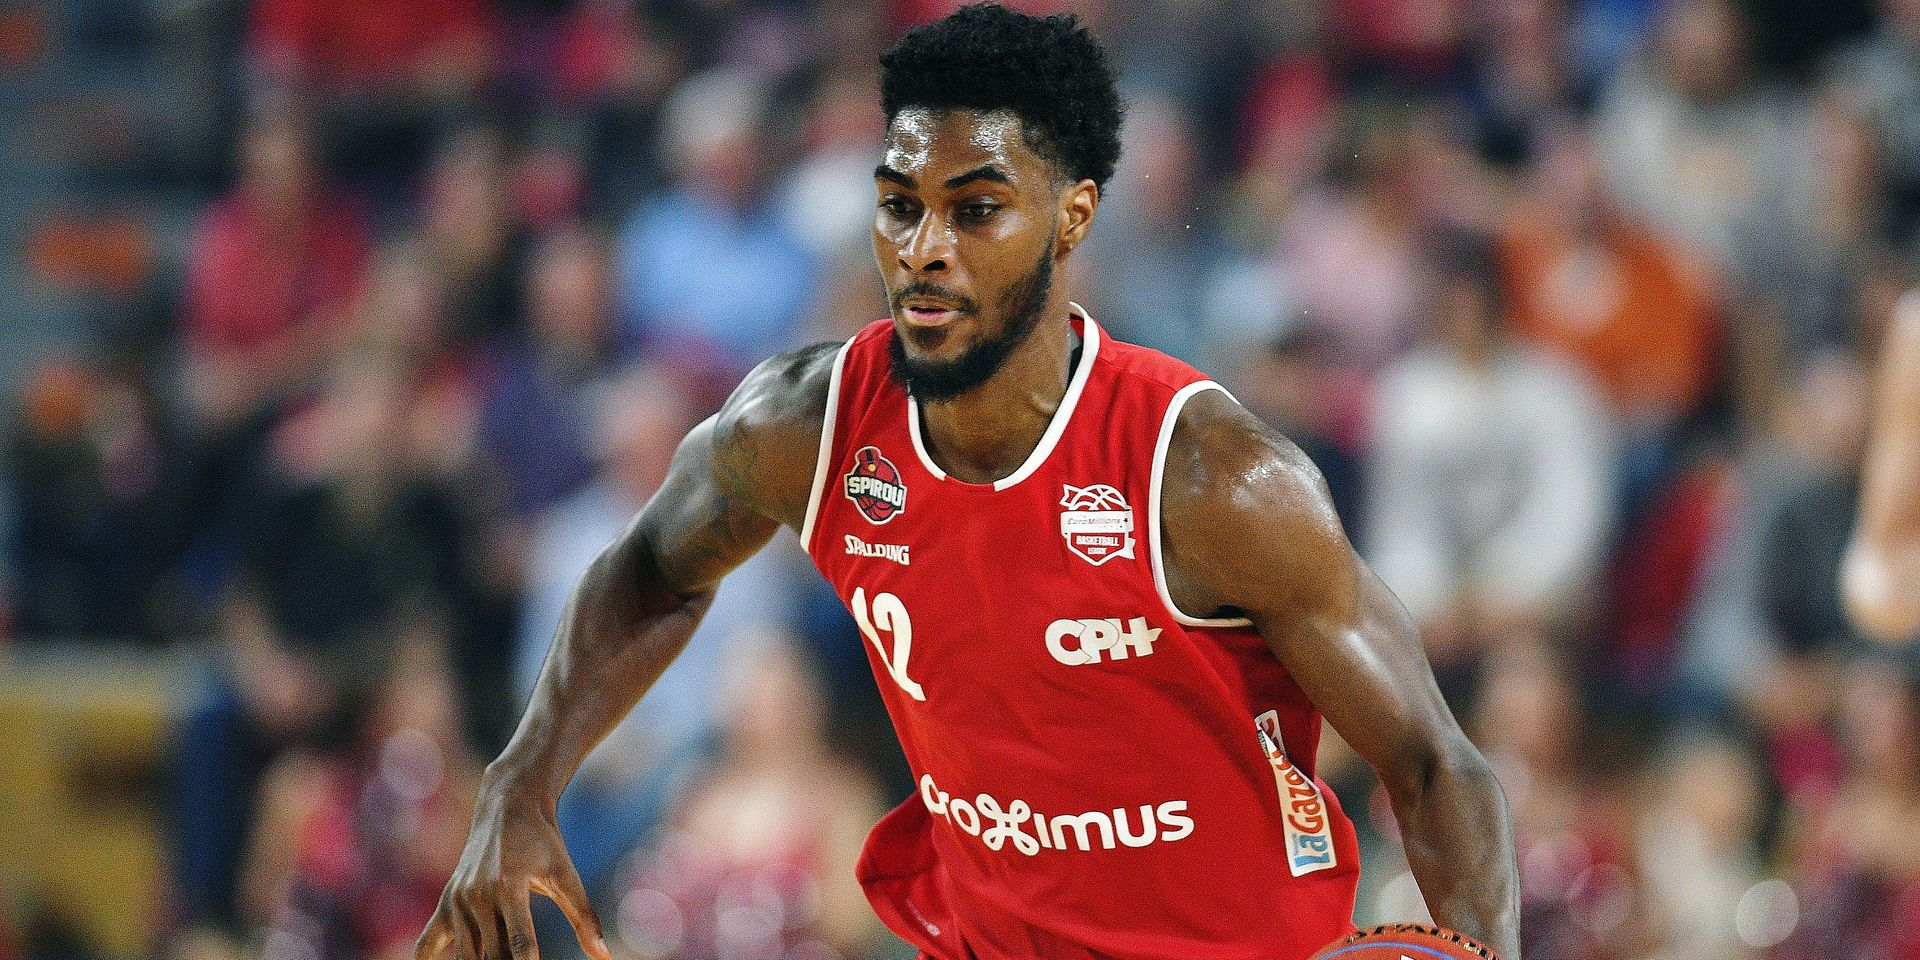 Charleroi's Quincy Ford pictured in action during the basketball match between Spirou Charleroi and BC Telenet Oostende, Friday 12 October 2018 in Charleroi, the third game of the 'EuroMillions League' Belgian first division. BELGA PHOTO DAVID STOCKMAN